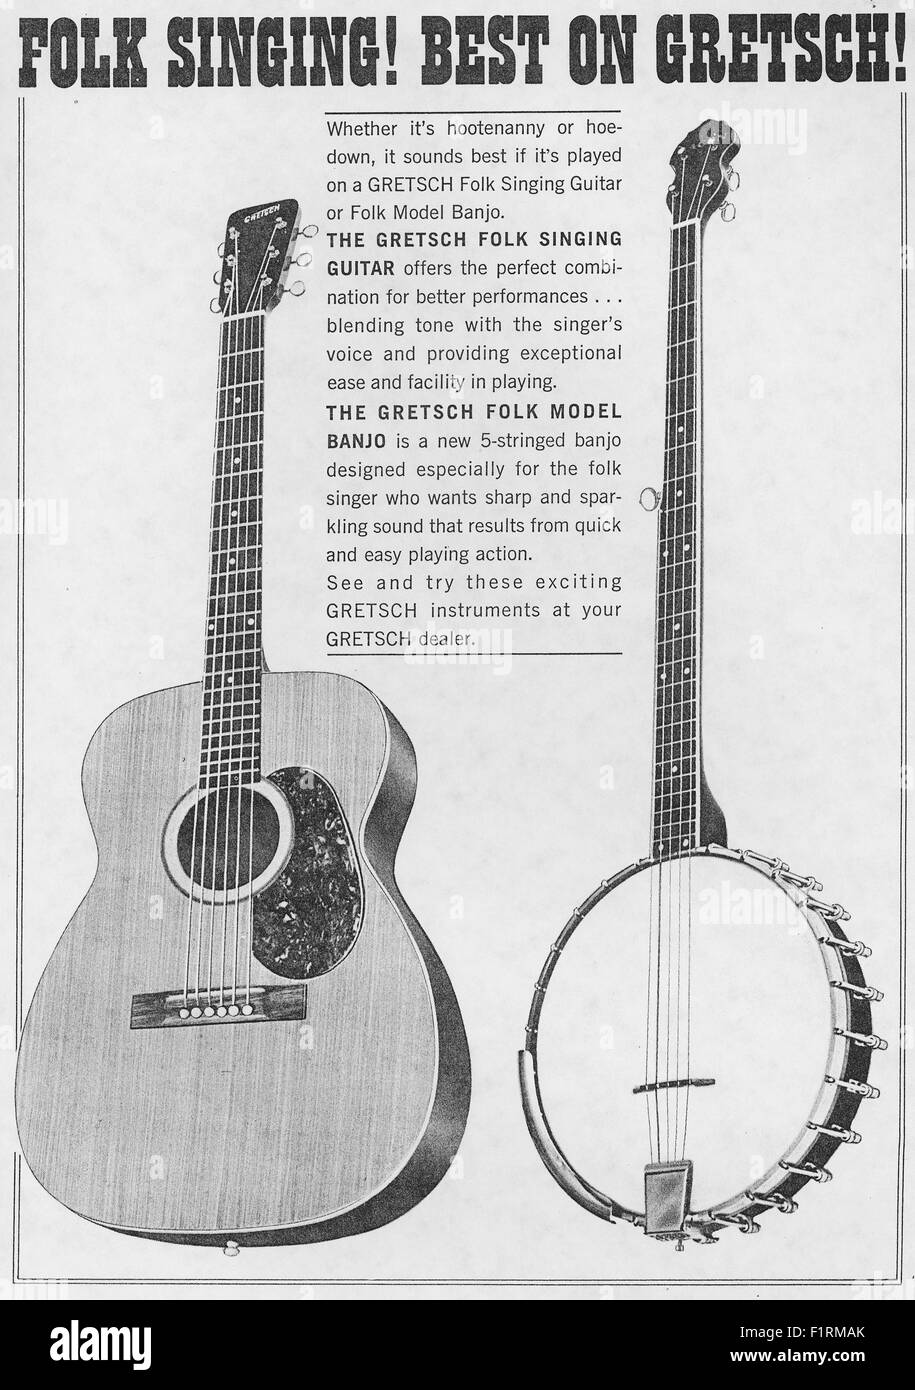 FOLK MUSIC EPHEMERA, circa 1960s.  PRINT AD FOR GRETSCH GUITAR AND BANJO. Courtesy Granamour Weems Collection. AEditorial - Stock Image